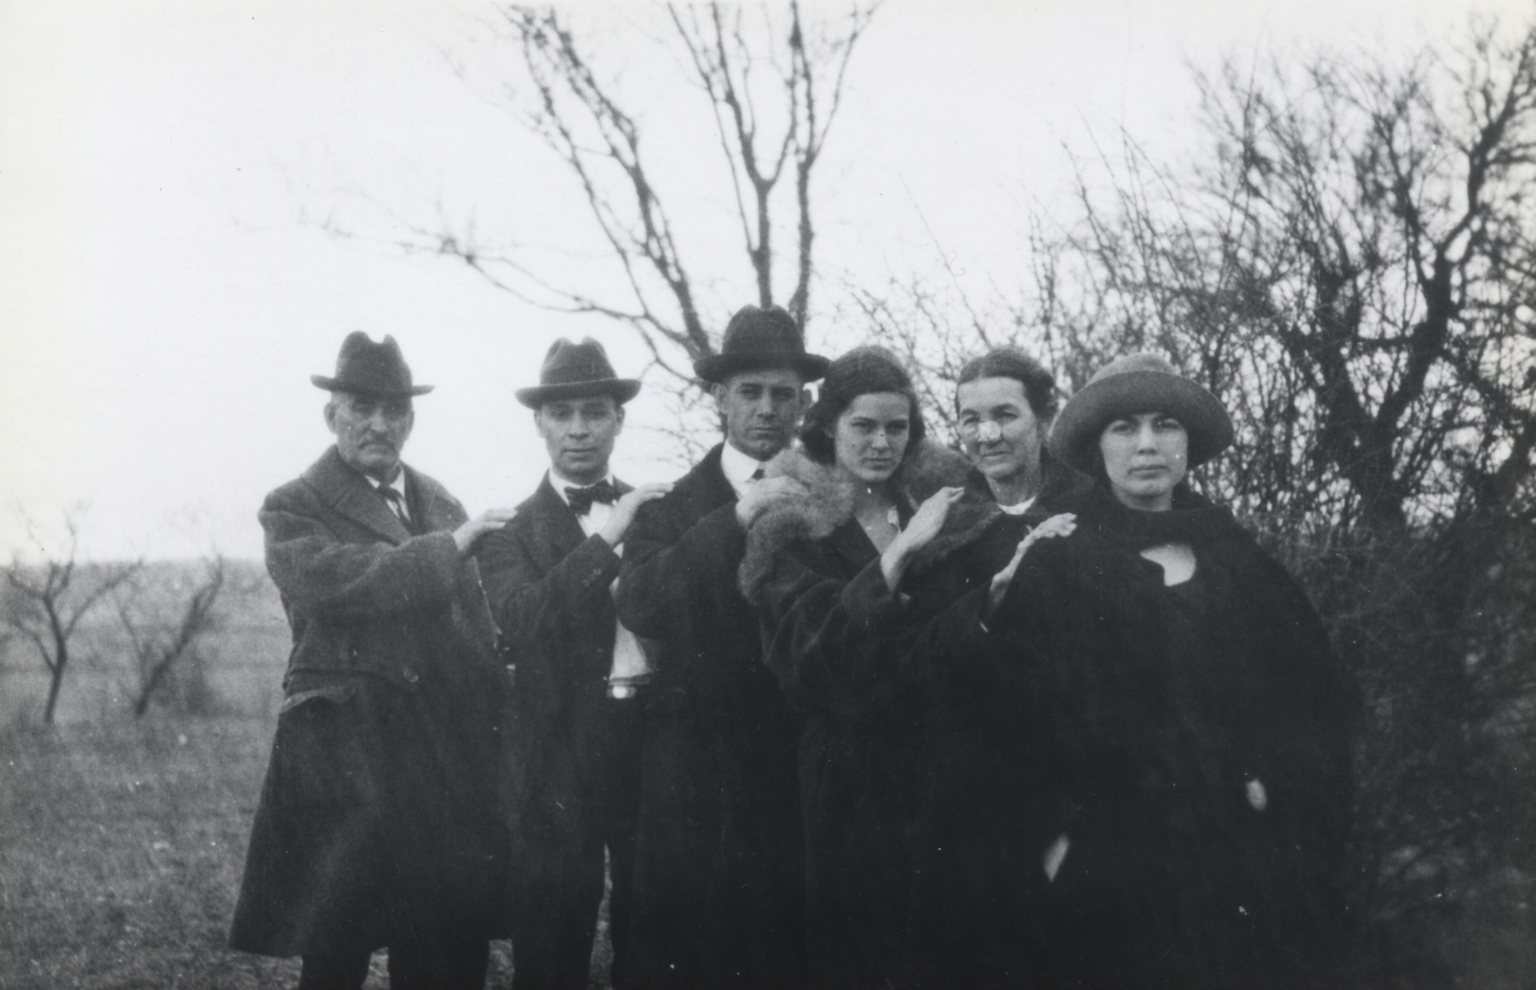 John William Bell, Hap Faber, Charles, Laura E, Laura A Bell and Mary